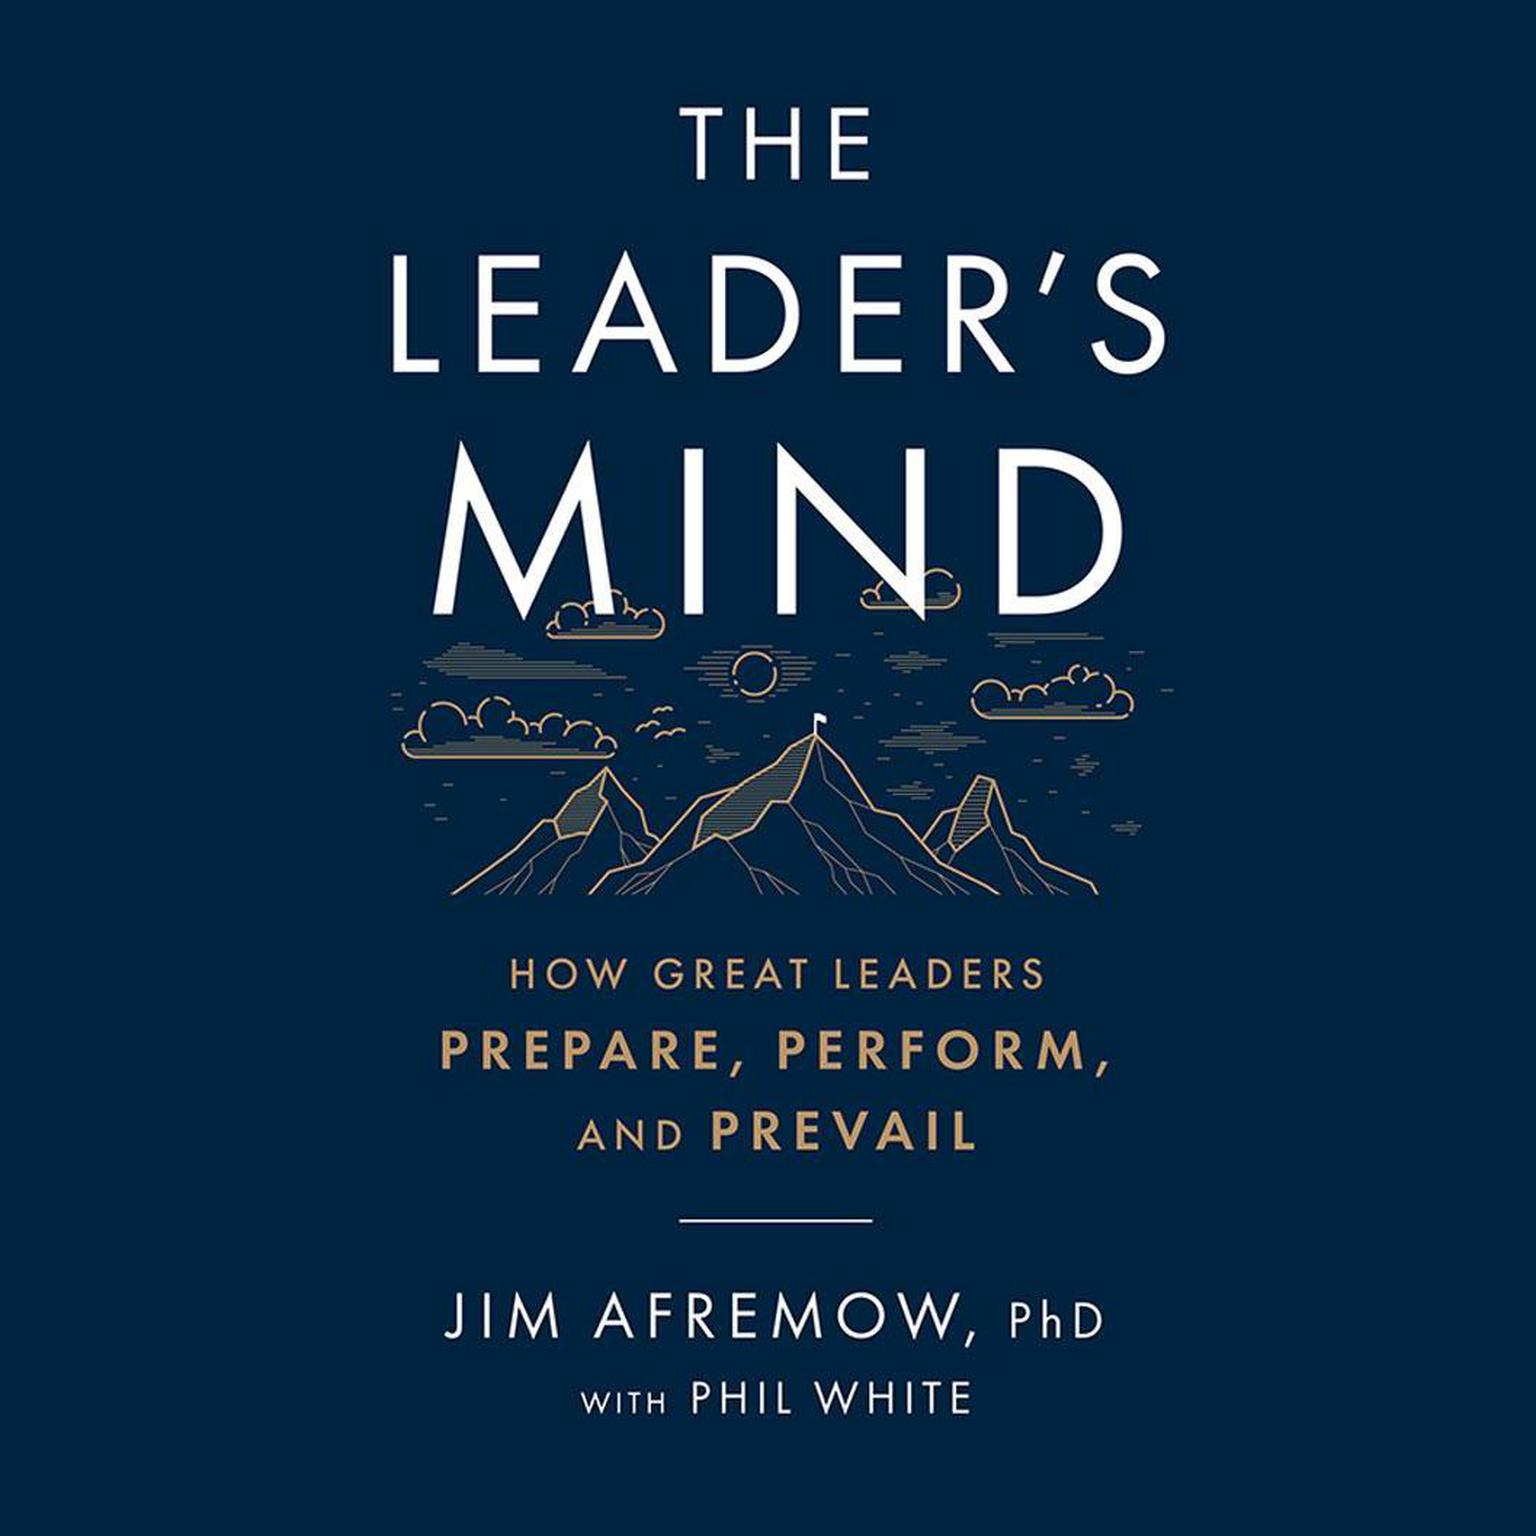 The Leaders Mind: How Great Leaders Prepare, Perform, and Prevail Audiobook, by Jim Afremow